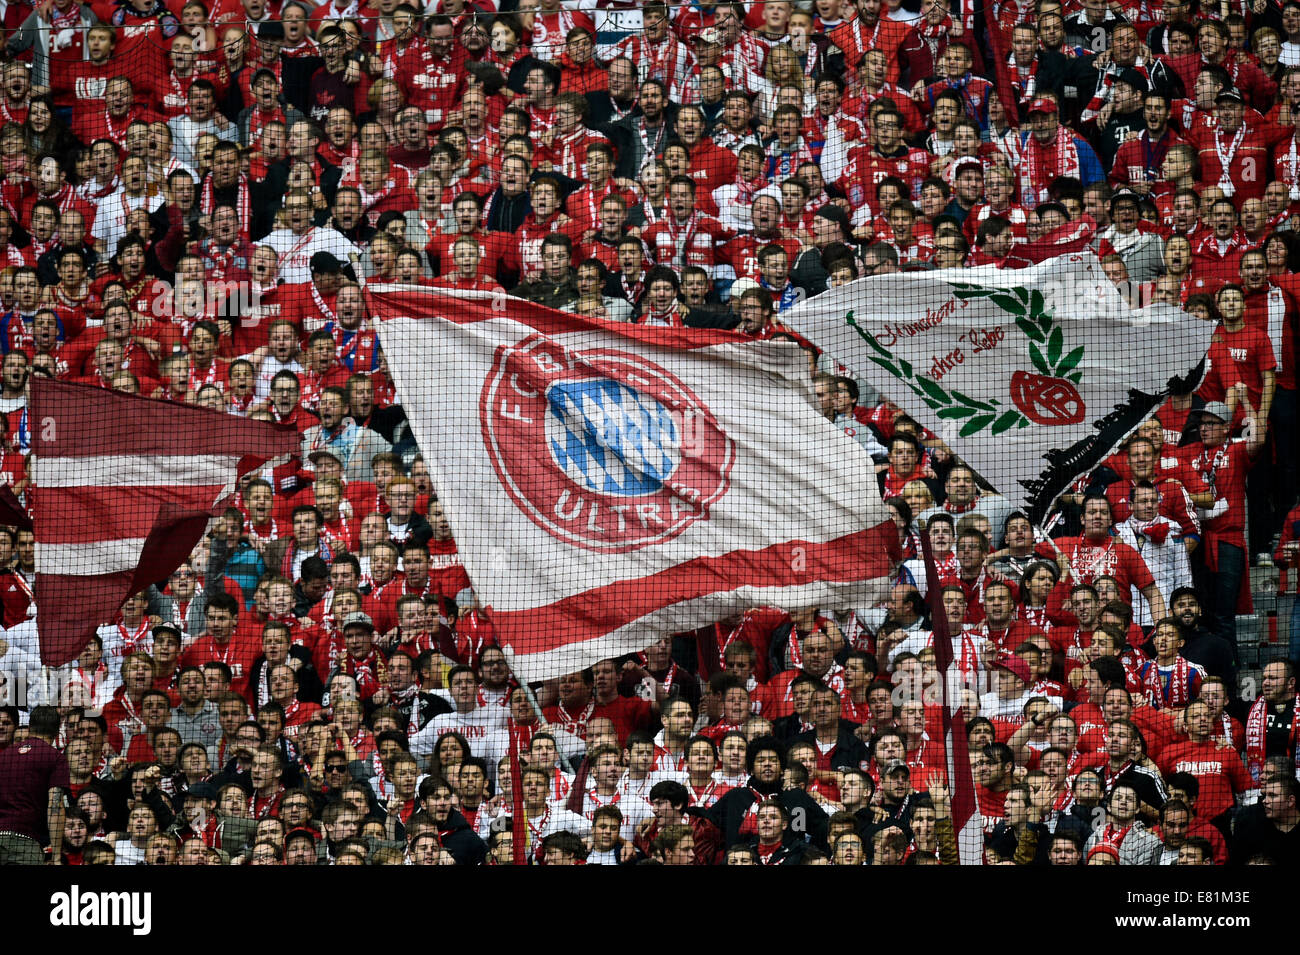 Flag Bavaria - the pride of the German fans